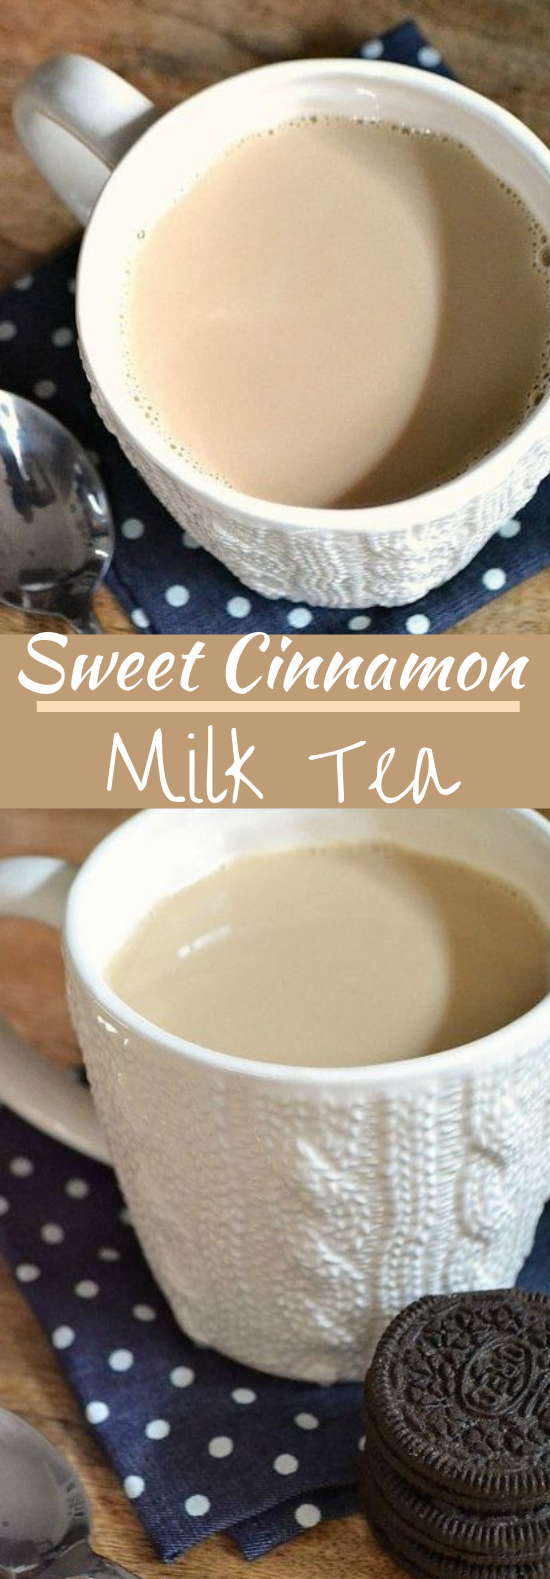 Sweet Cinnamon Milk Tea #drinks #milk